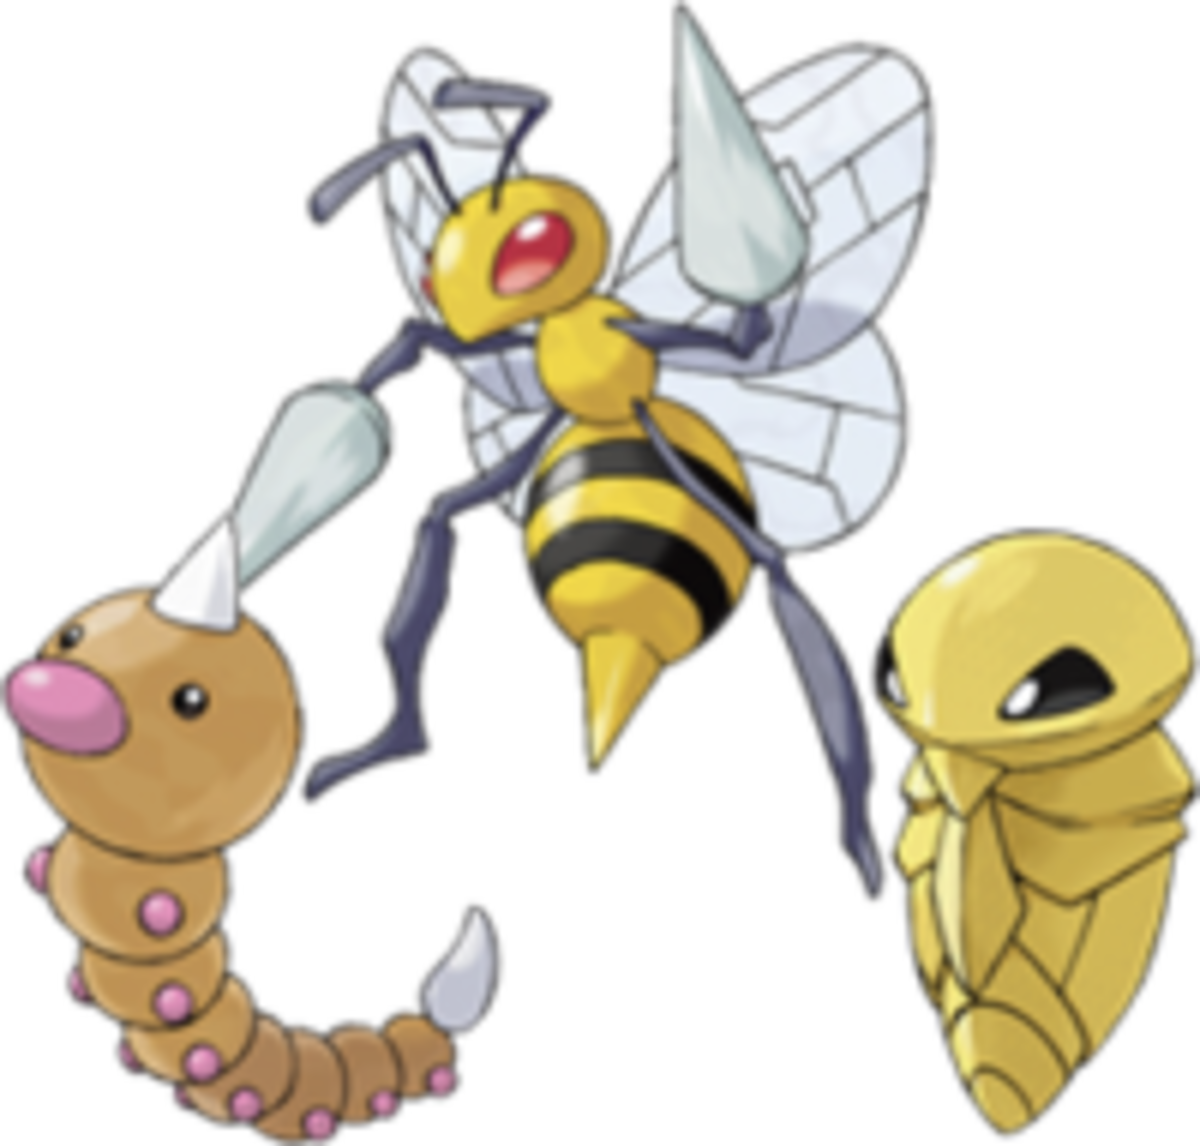 Weedle, Kakuna, and Beedrill